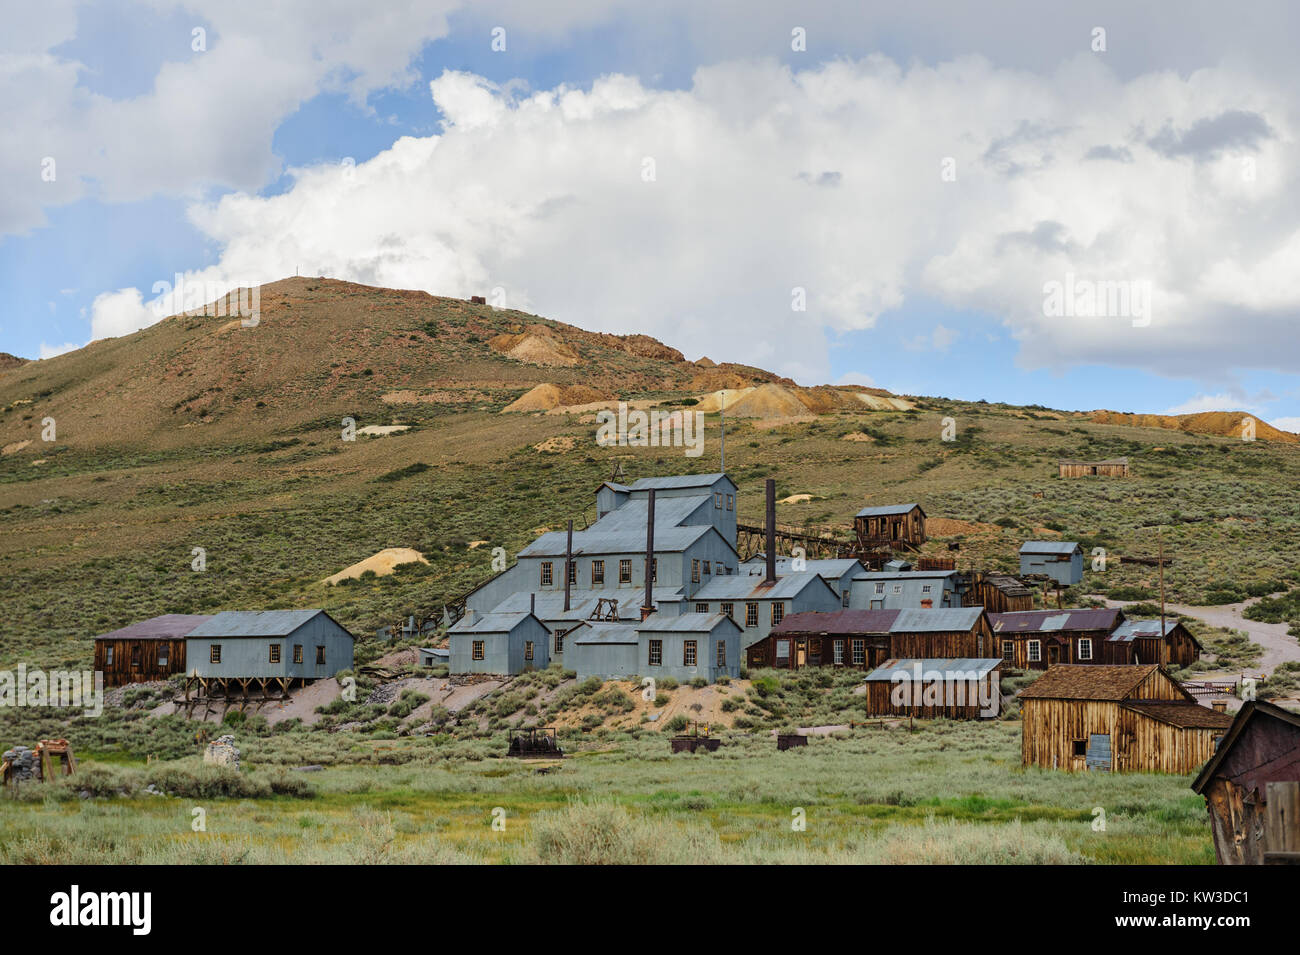 Bodie Stamp Mill Photo Stock